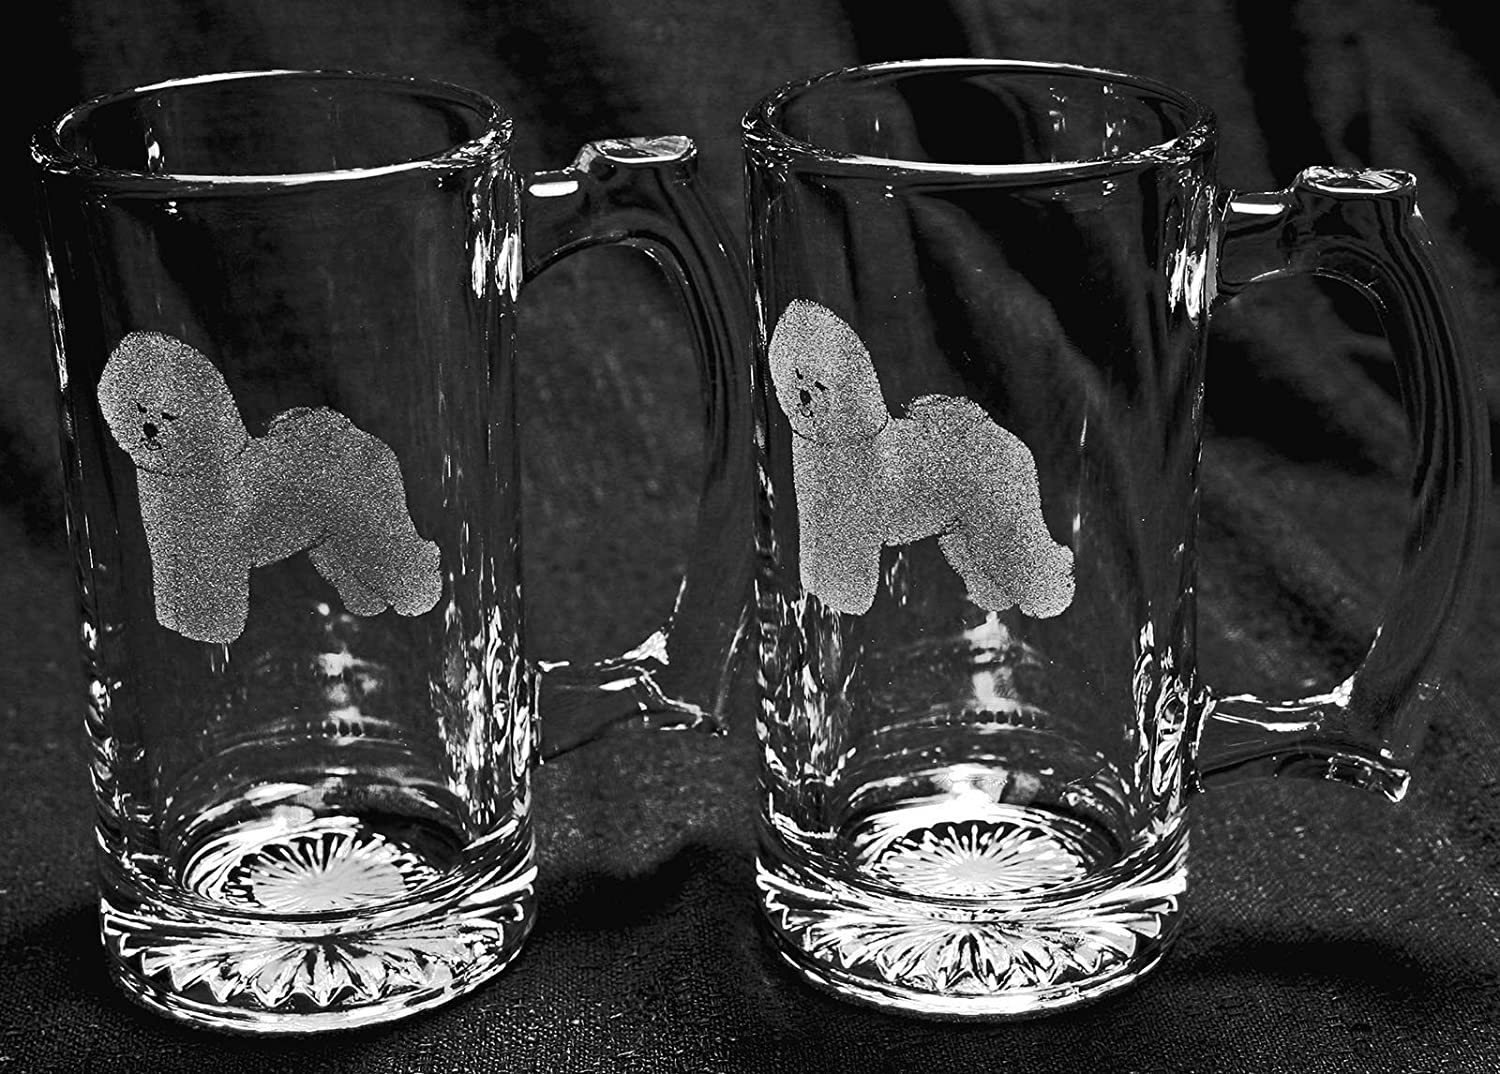 Bichon Frise Beer Mugs